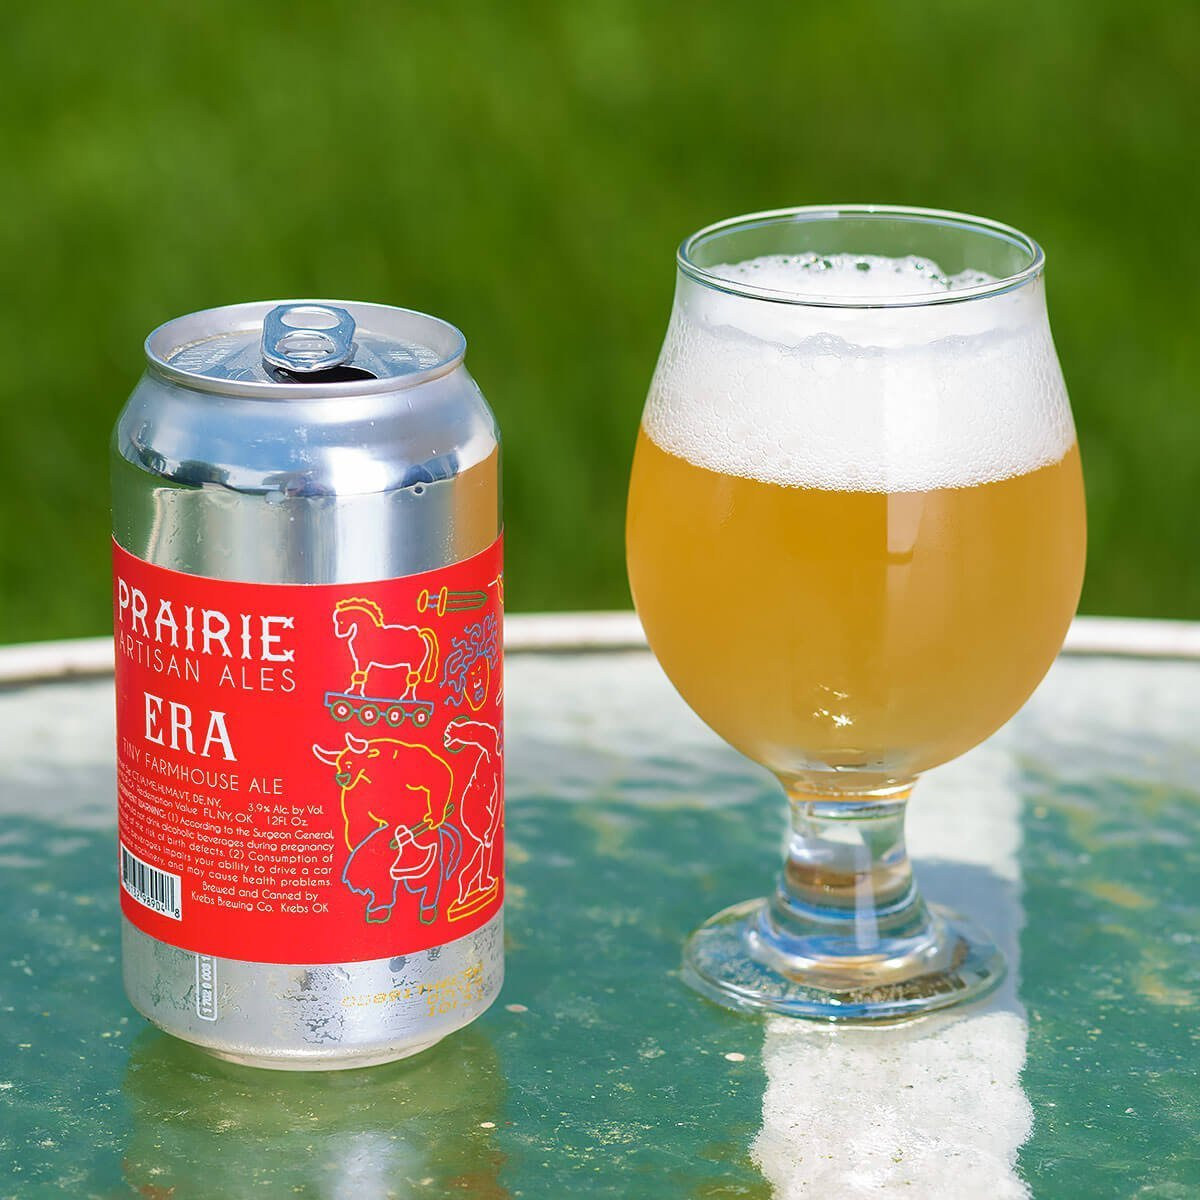 Era Tiny Farmhouse Ale by Prairie Artisan Ales